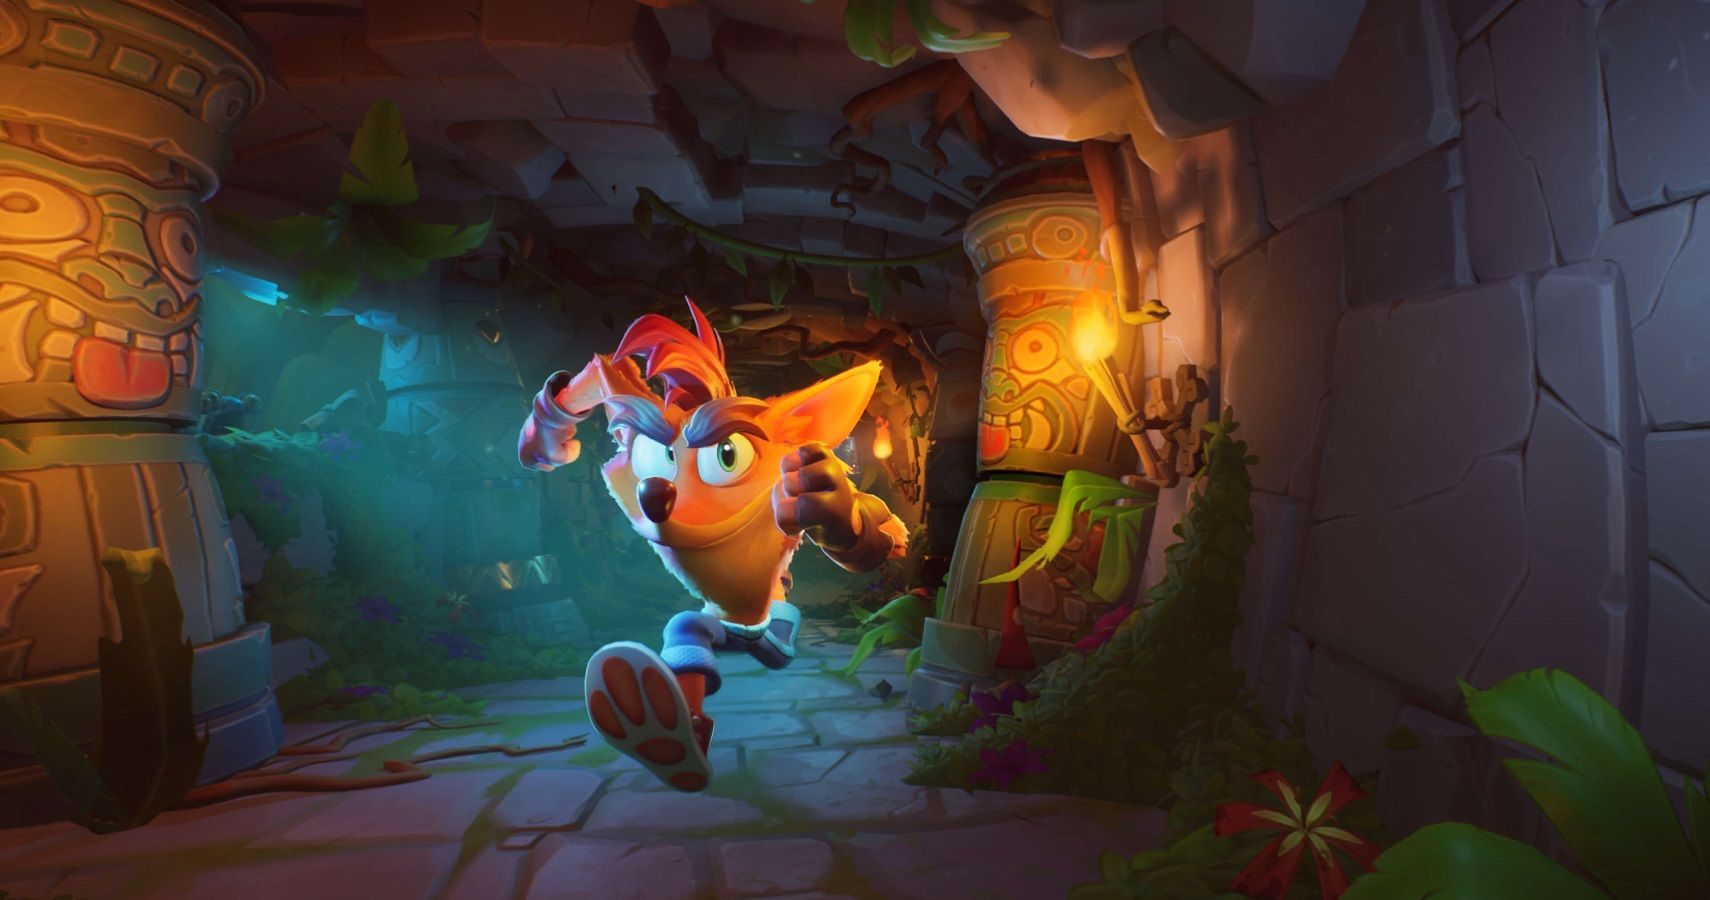 I Never Feel More Like A Failure Than I Do When I Play Crash Bandicoot: It's About Time